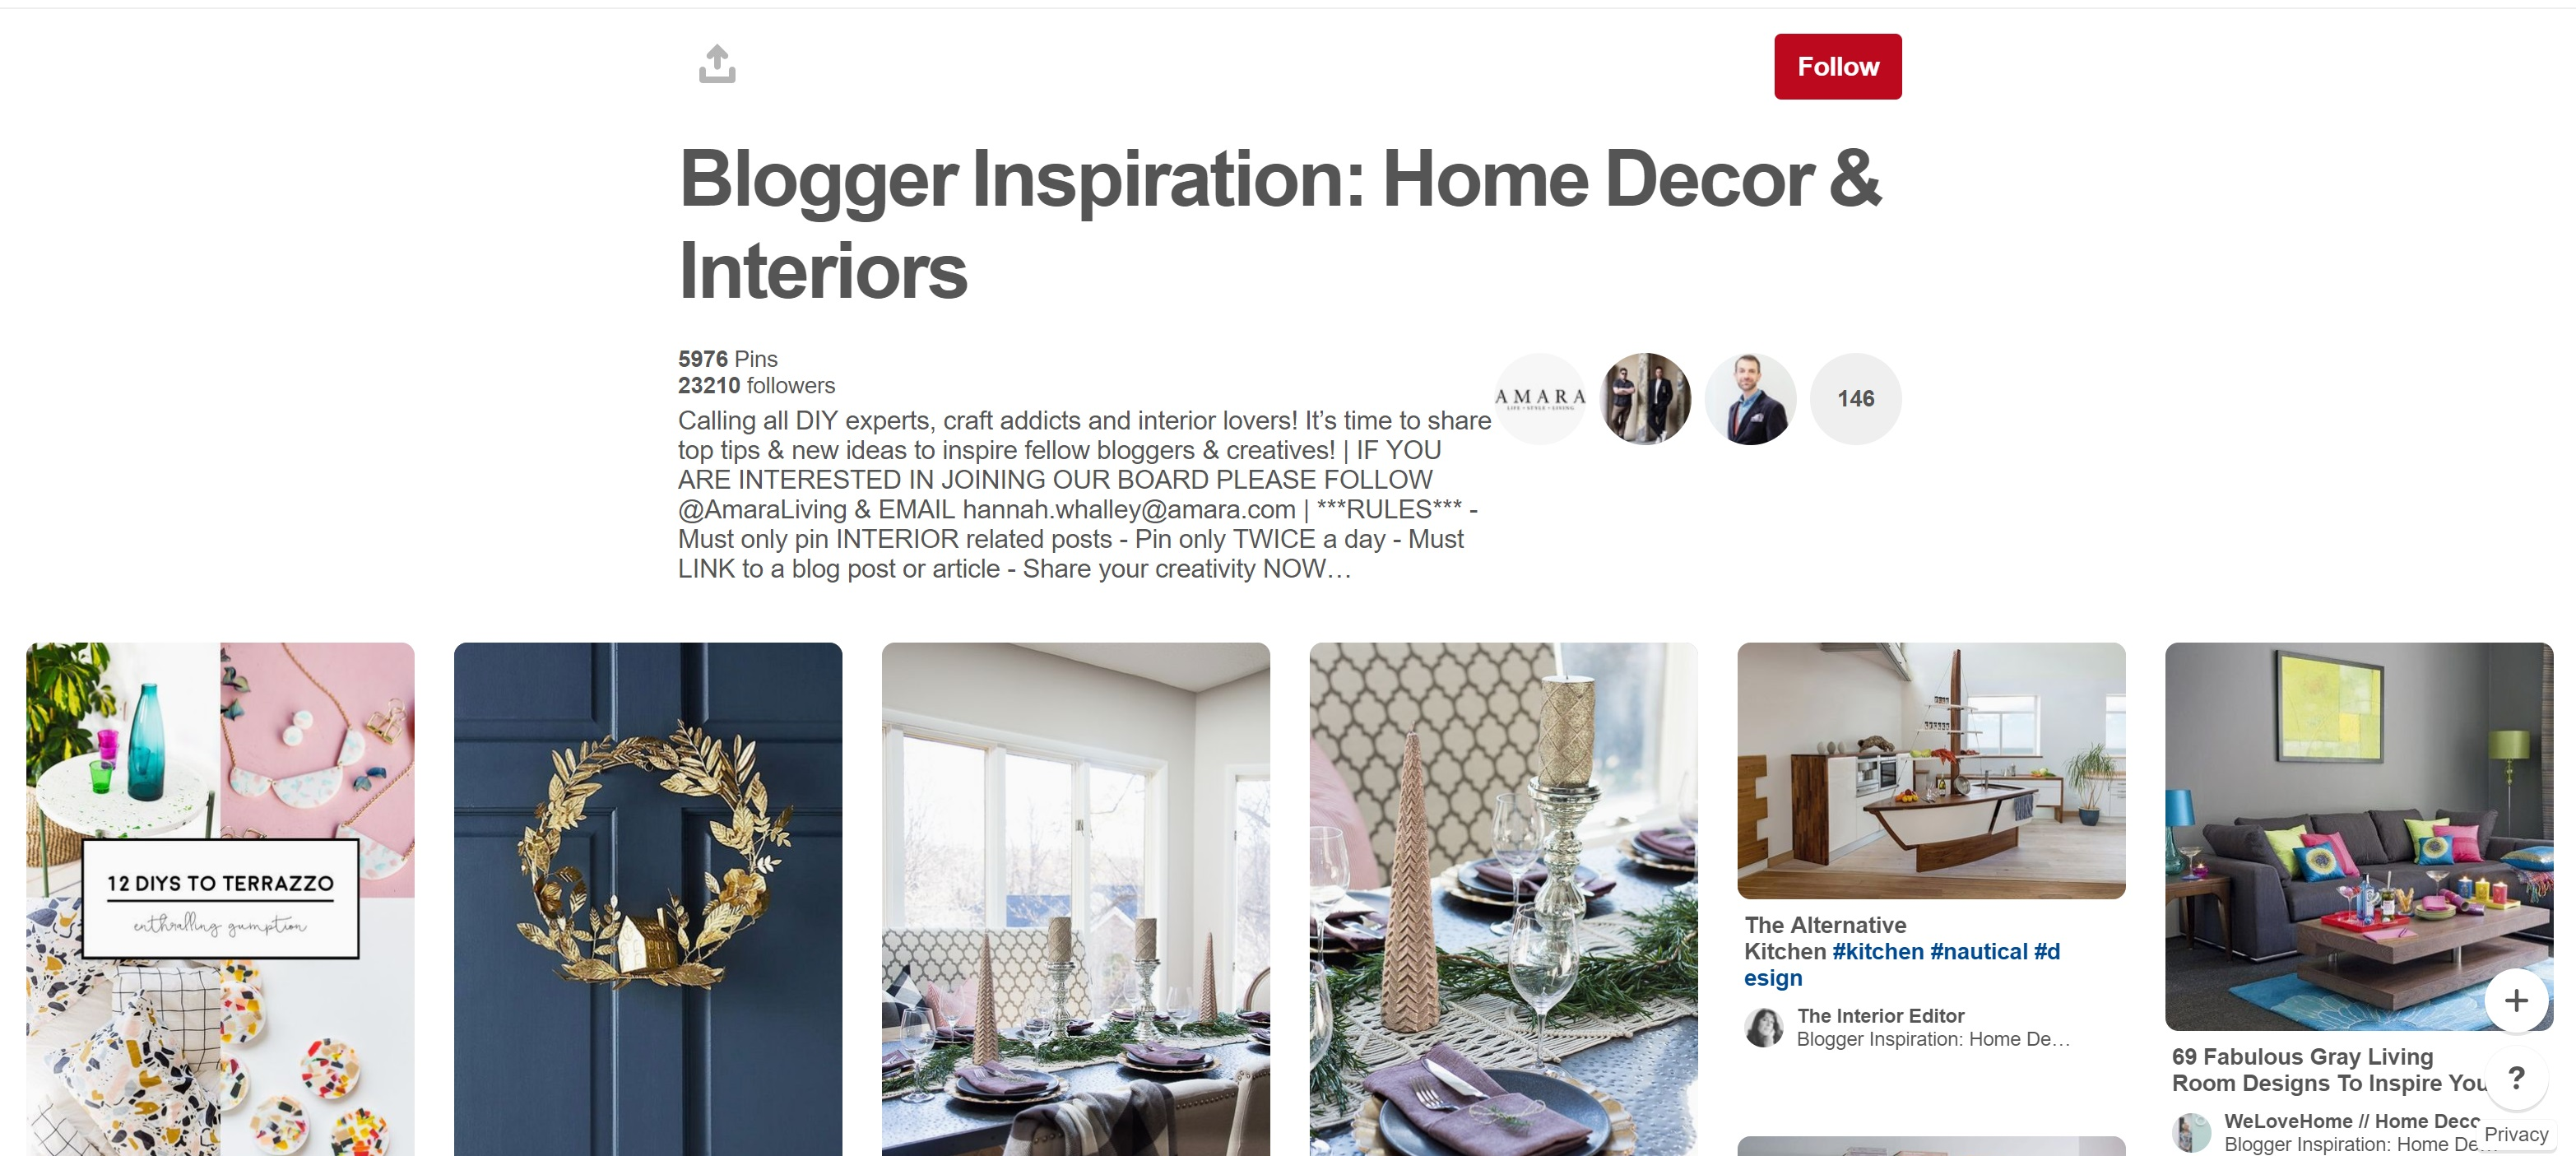 Social Media for Bloggers: The Complete Guide For Interior Bloggers